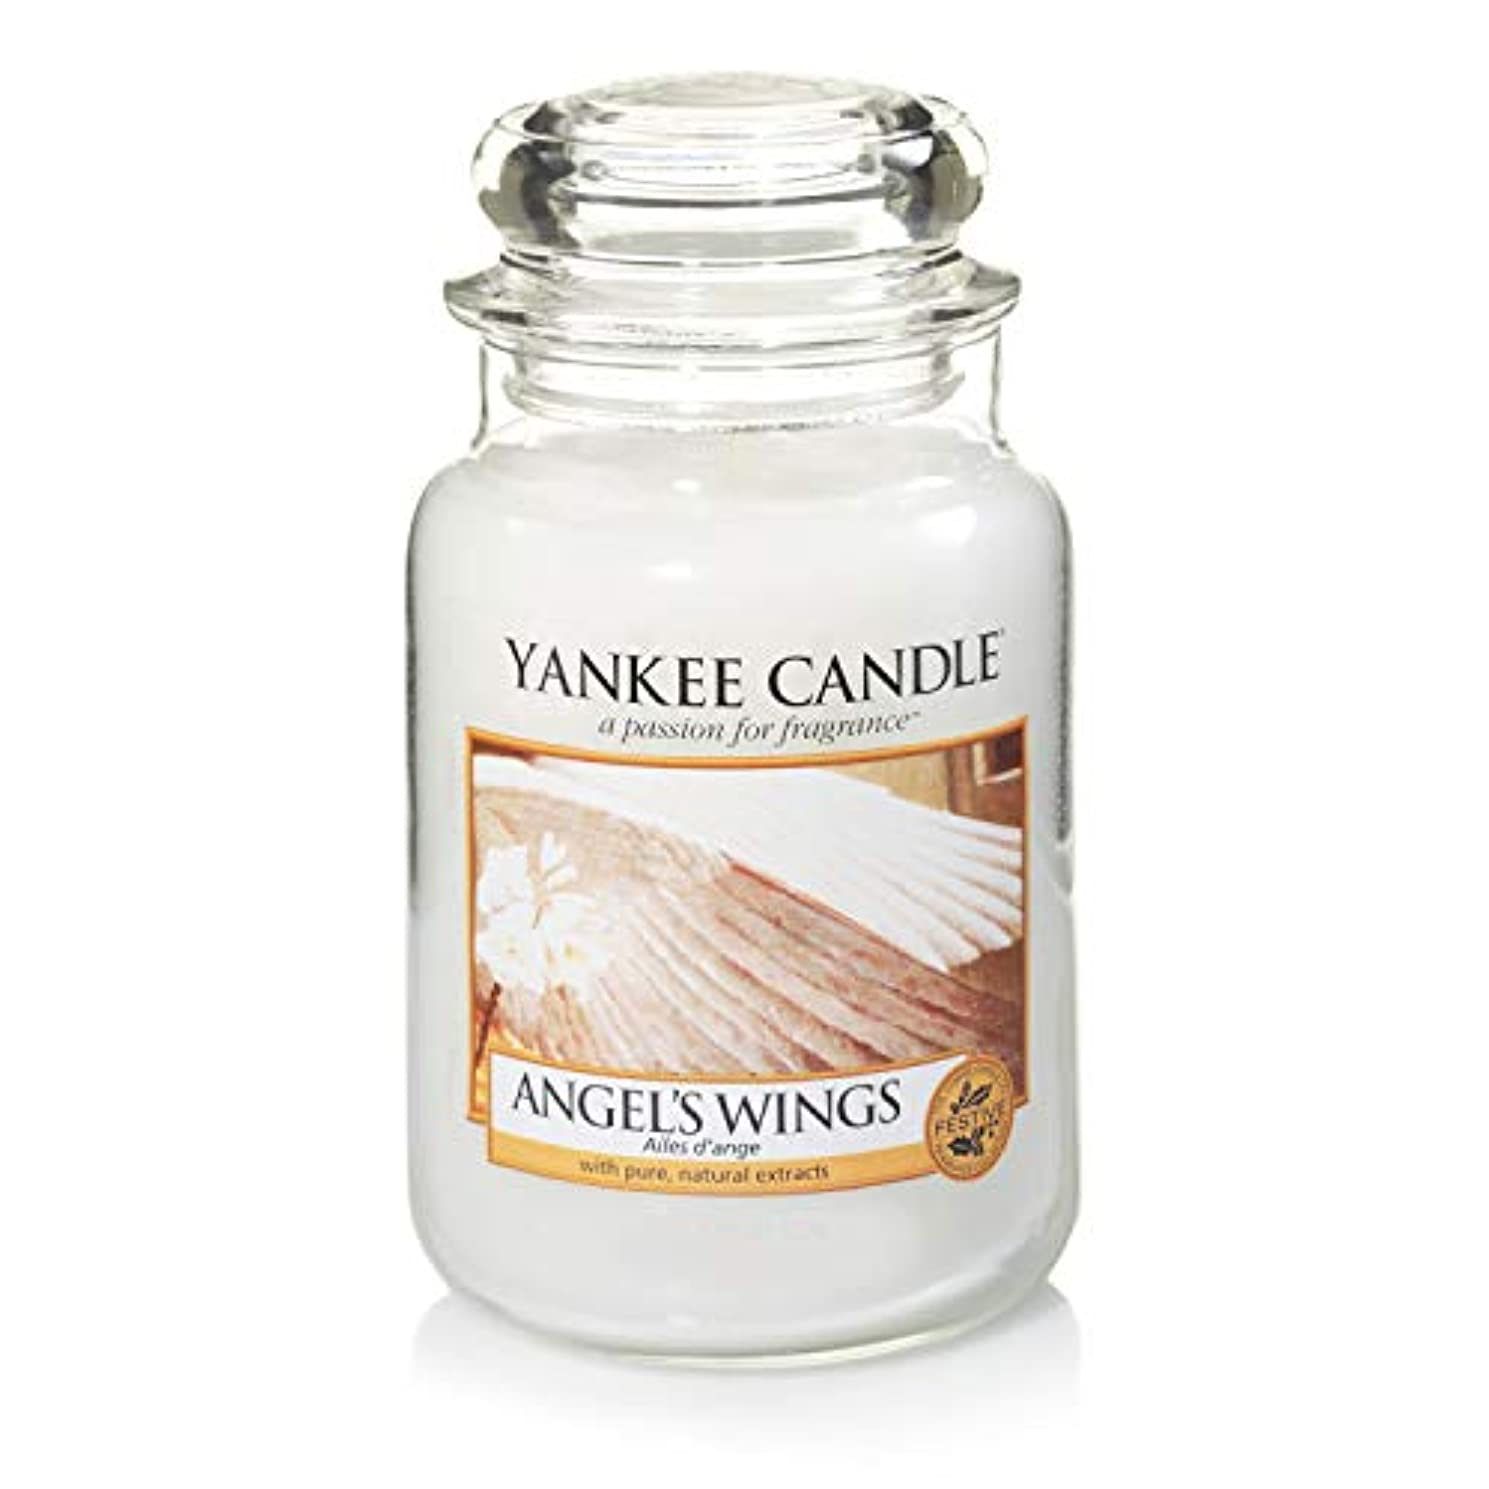 Yankee Candle Large Jar Candle, Angel's Wings by Yankee Candle